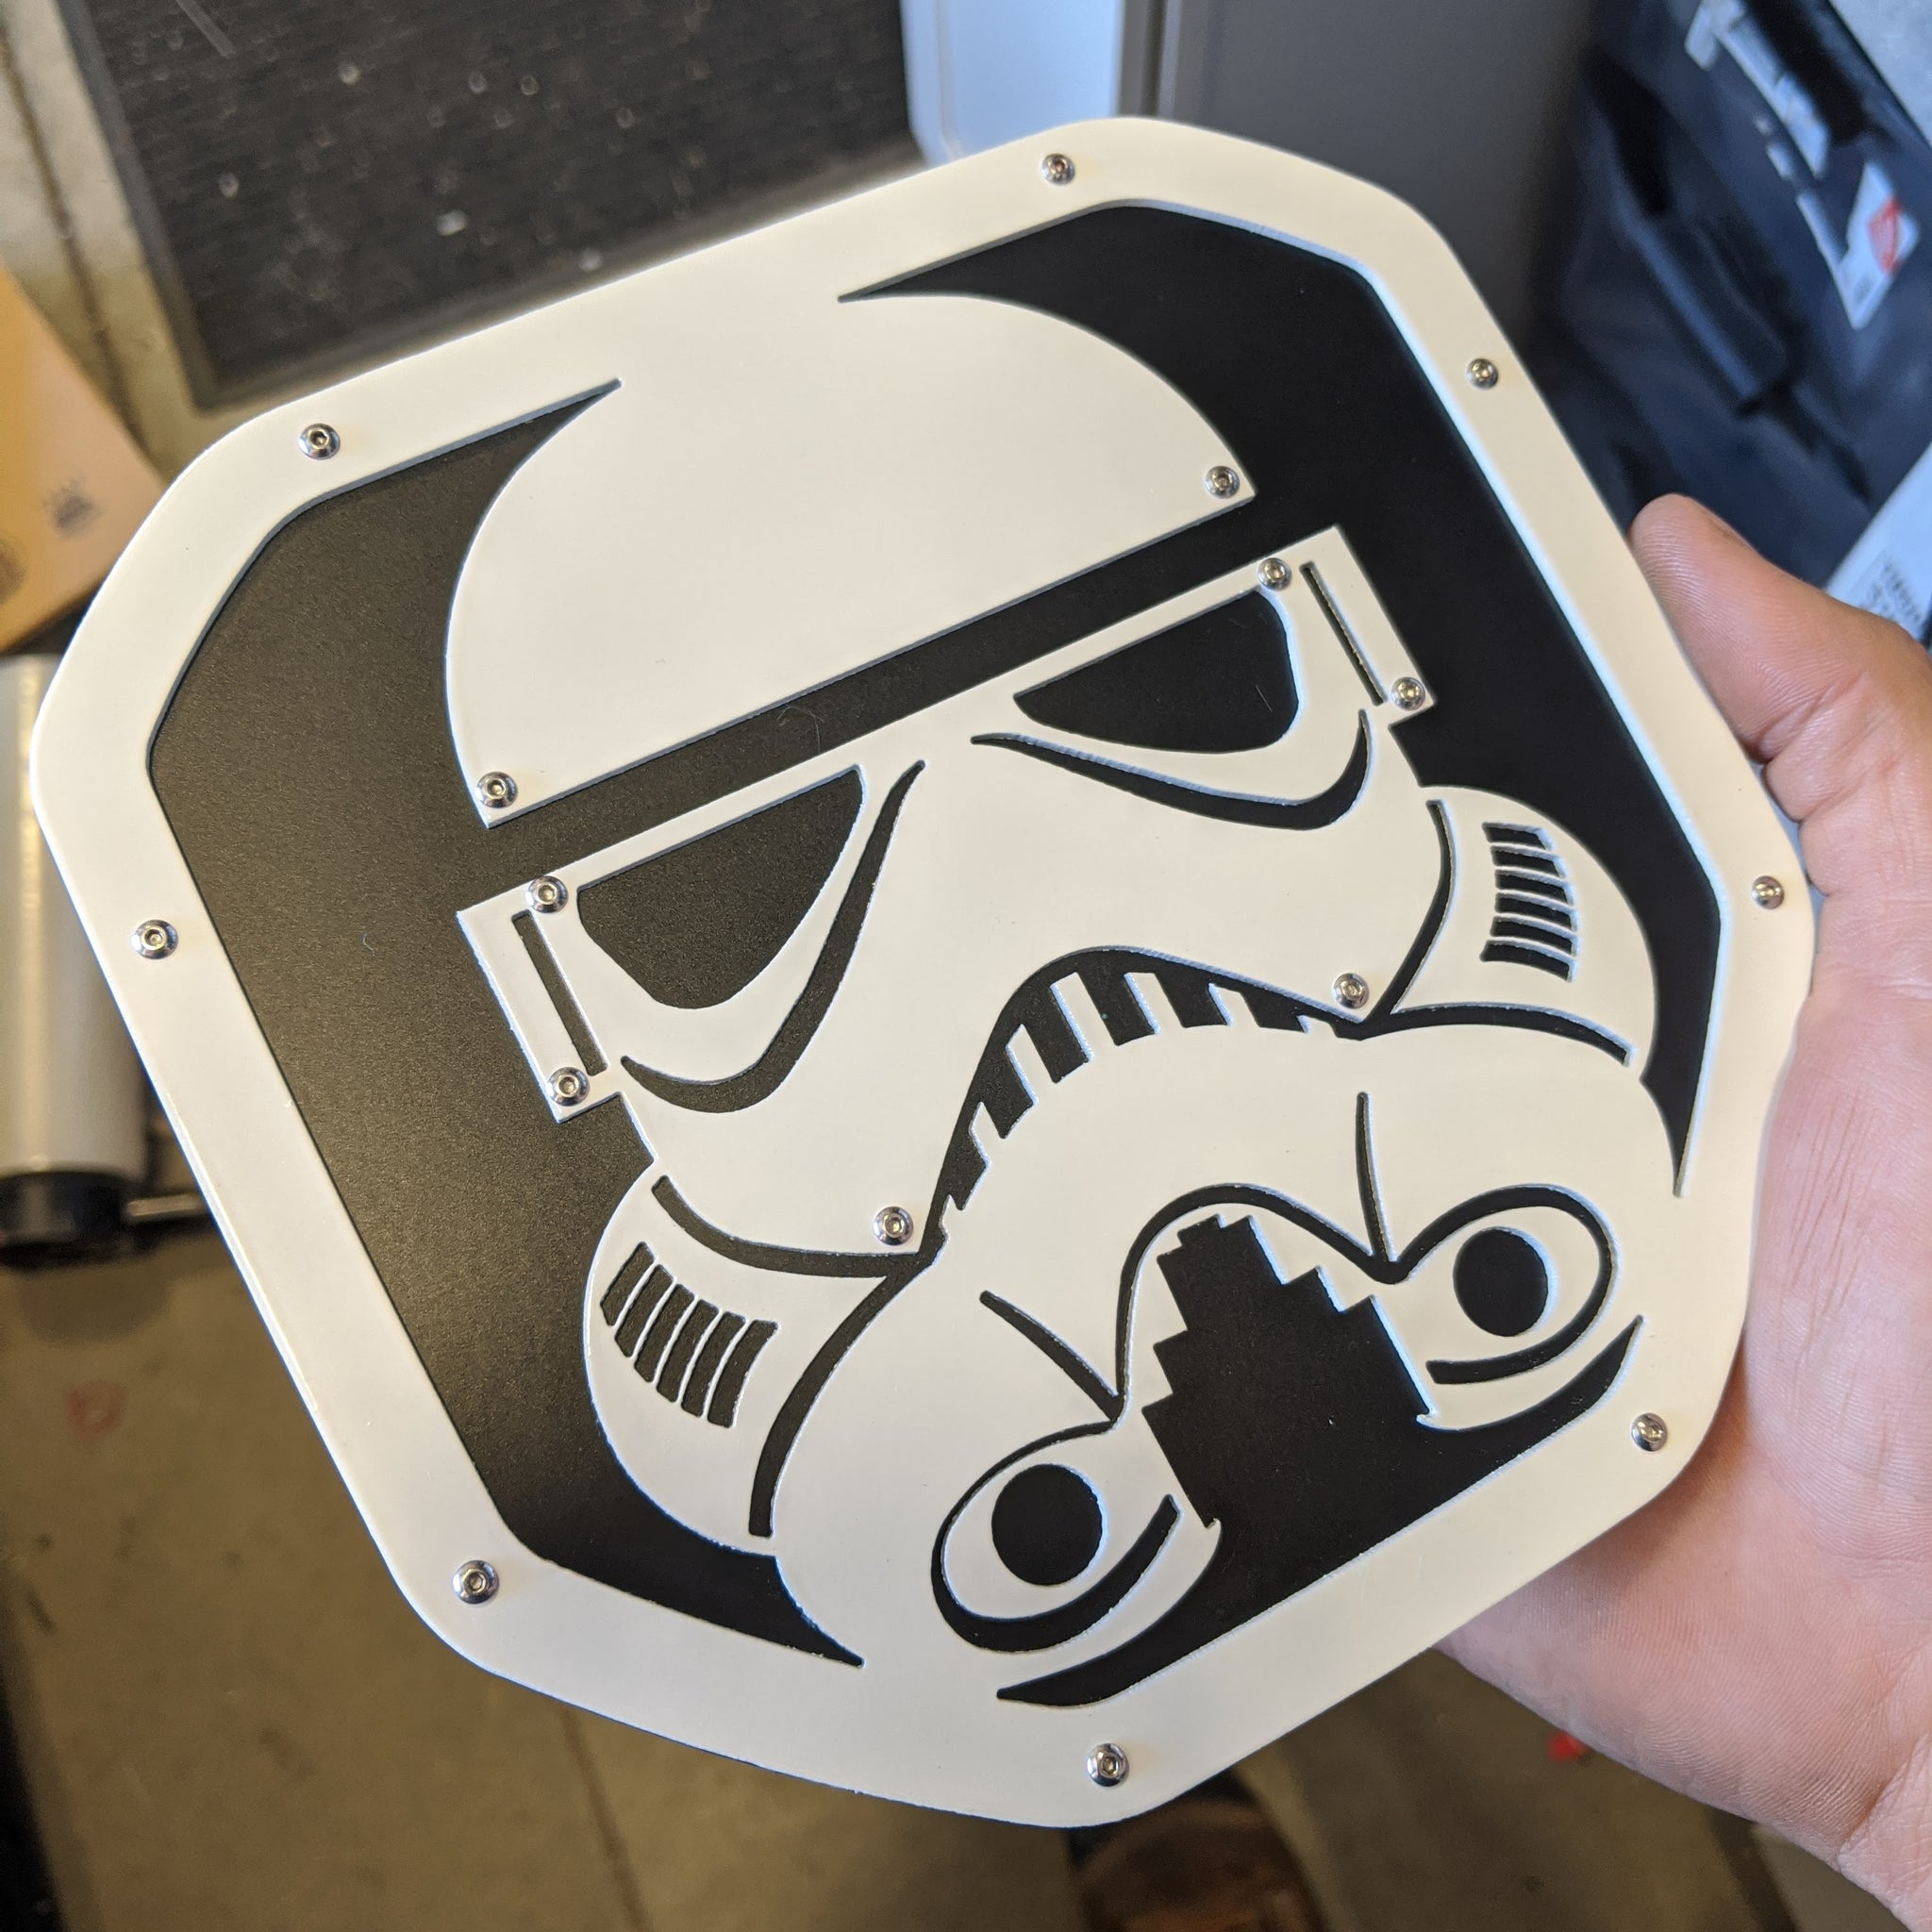 Stormtrooper Tailgate Badge - 19-20 Ram® - White and Black